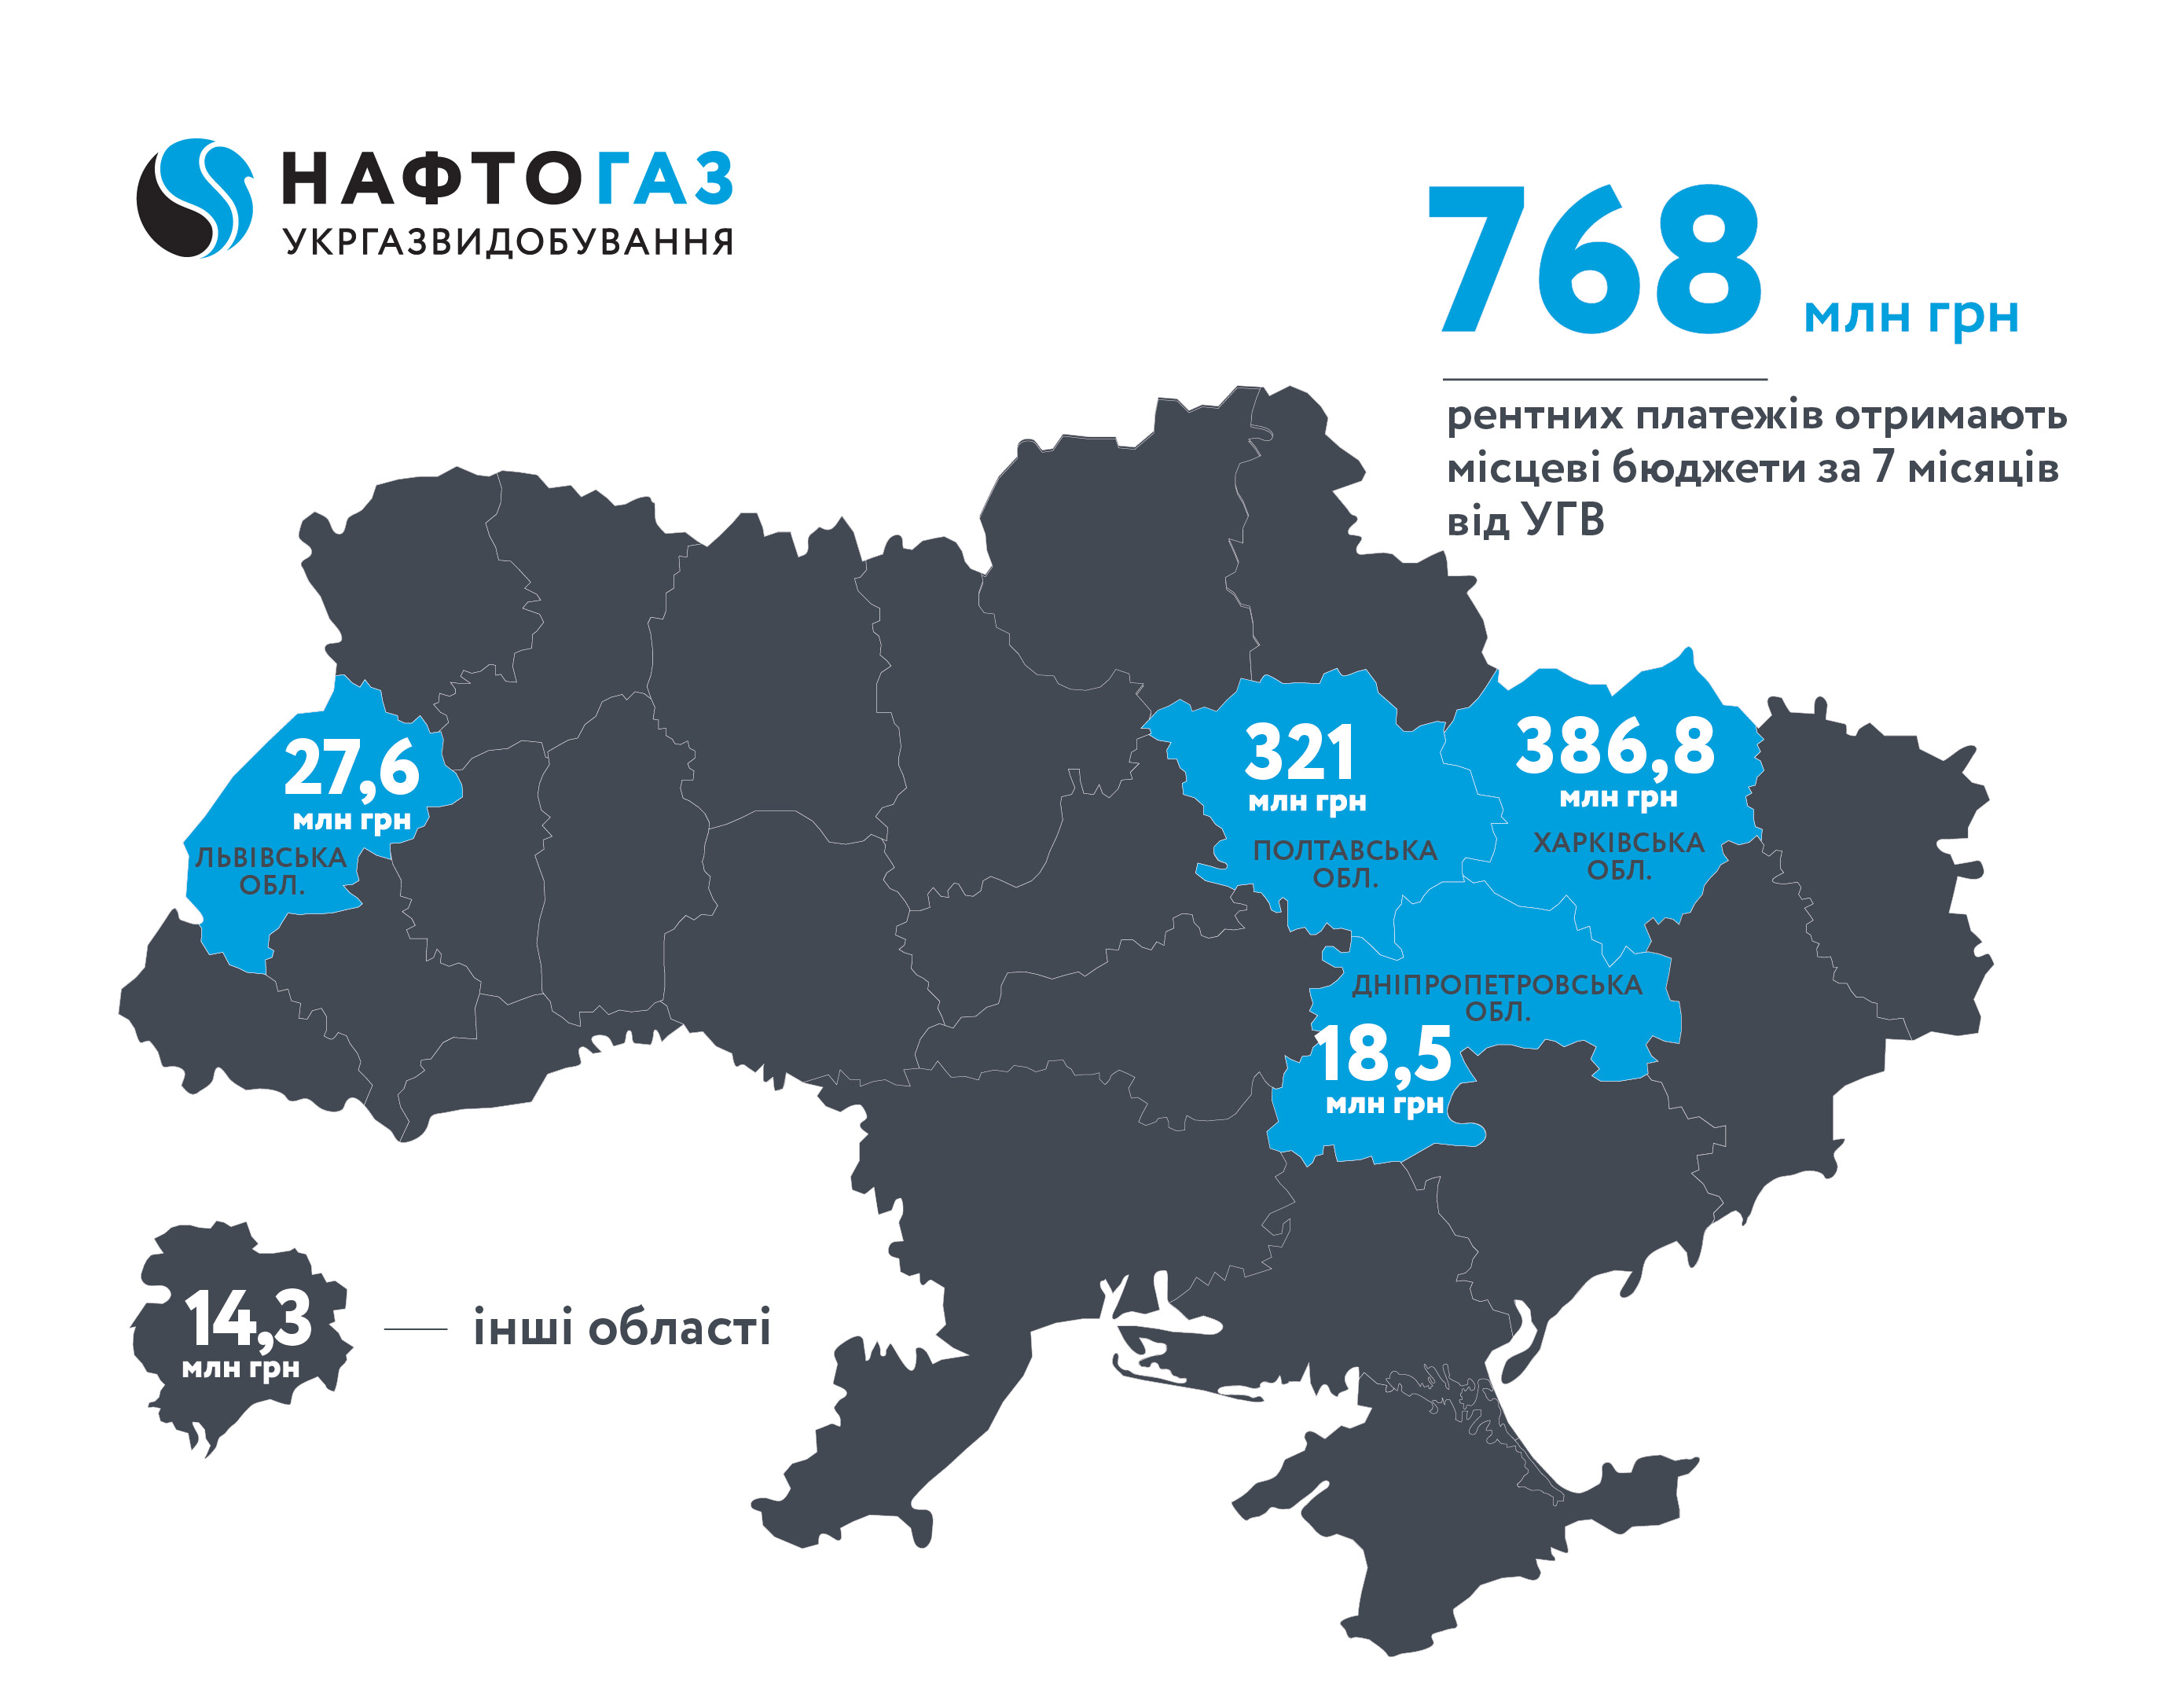 Ukrgasvydobuvannya for seven months of 2019 sent more than 768 mln UAH of rent payments to local budgets